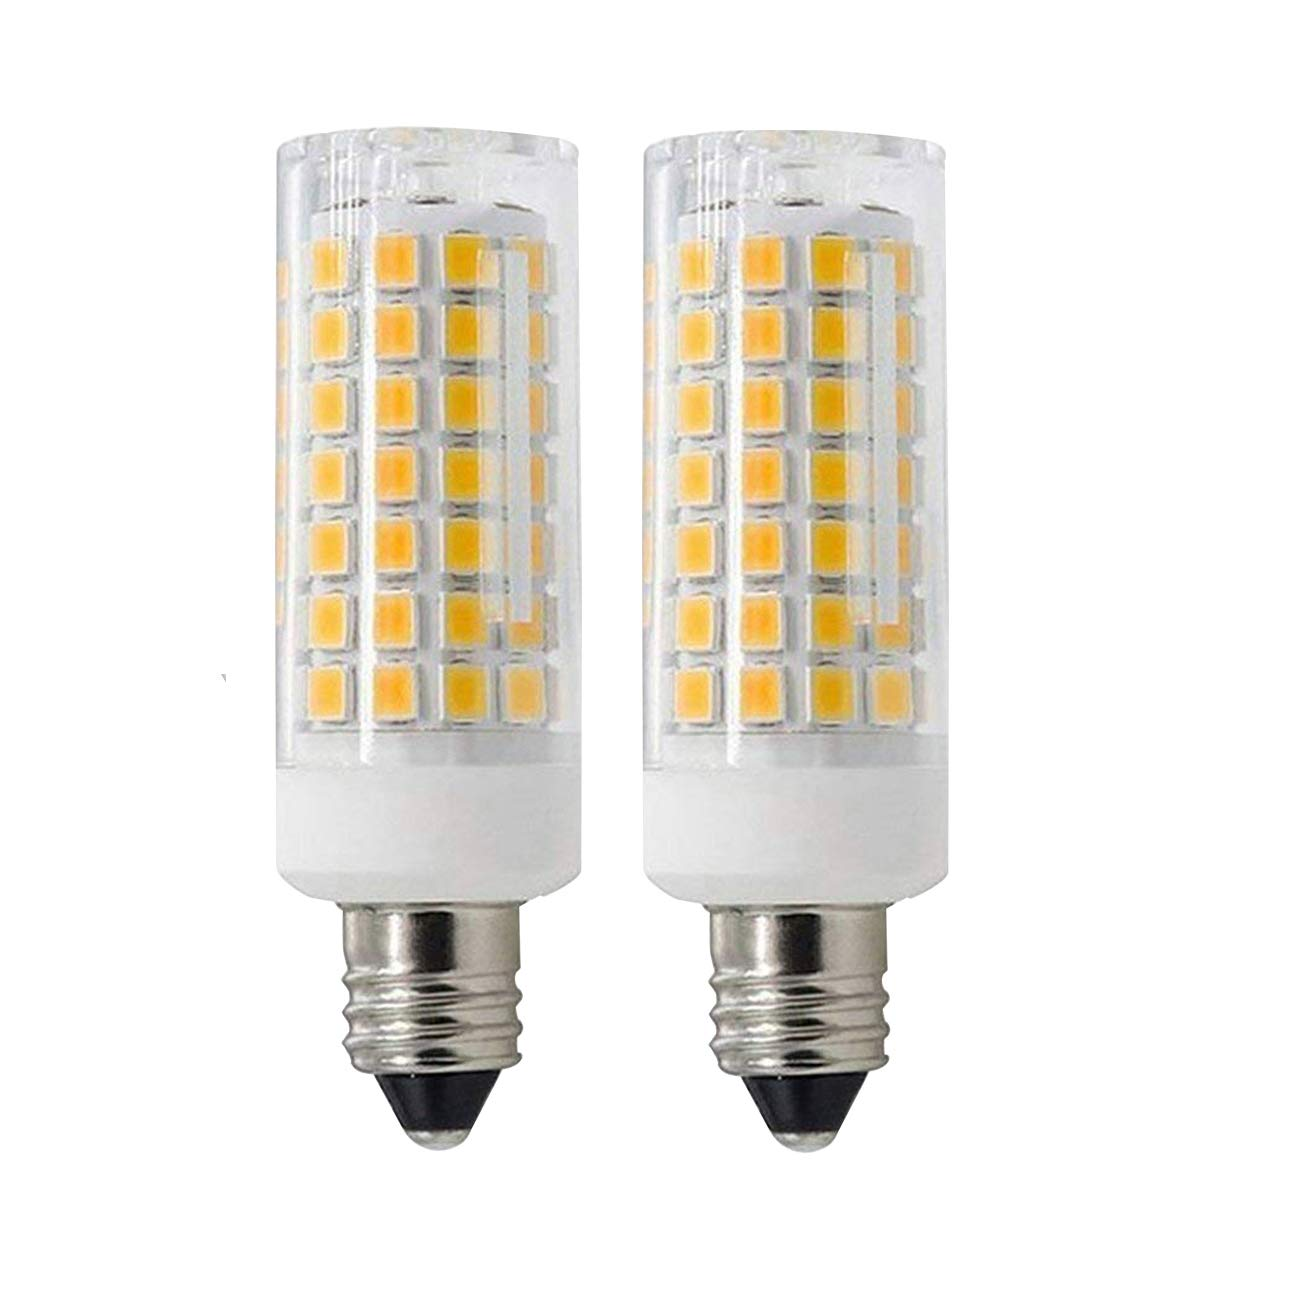 E11 Led Bulbs Dimmable Pack of 2 850Lm Home Lighting T3 T4 Led Bulbs for Chandeliers Warm White 3000K 7W JD E11 Mini Candelabra Base 70W Ceiling Fan Halogen Bulb Equivalent